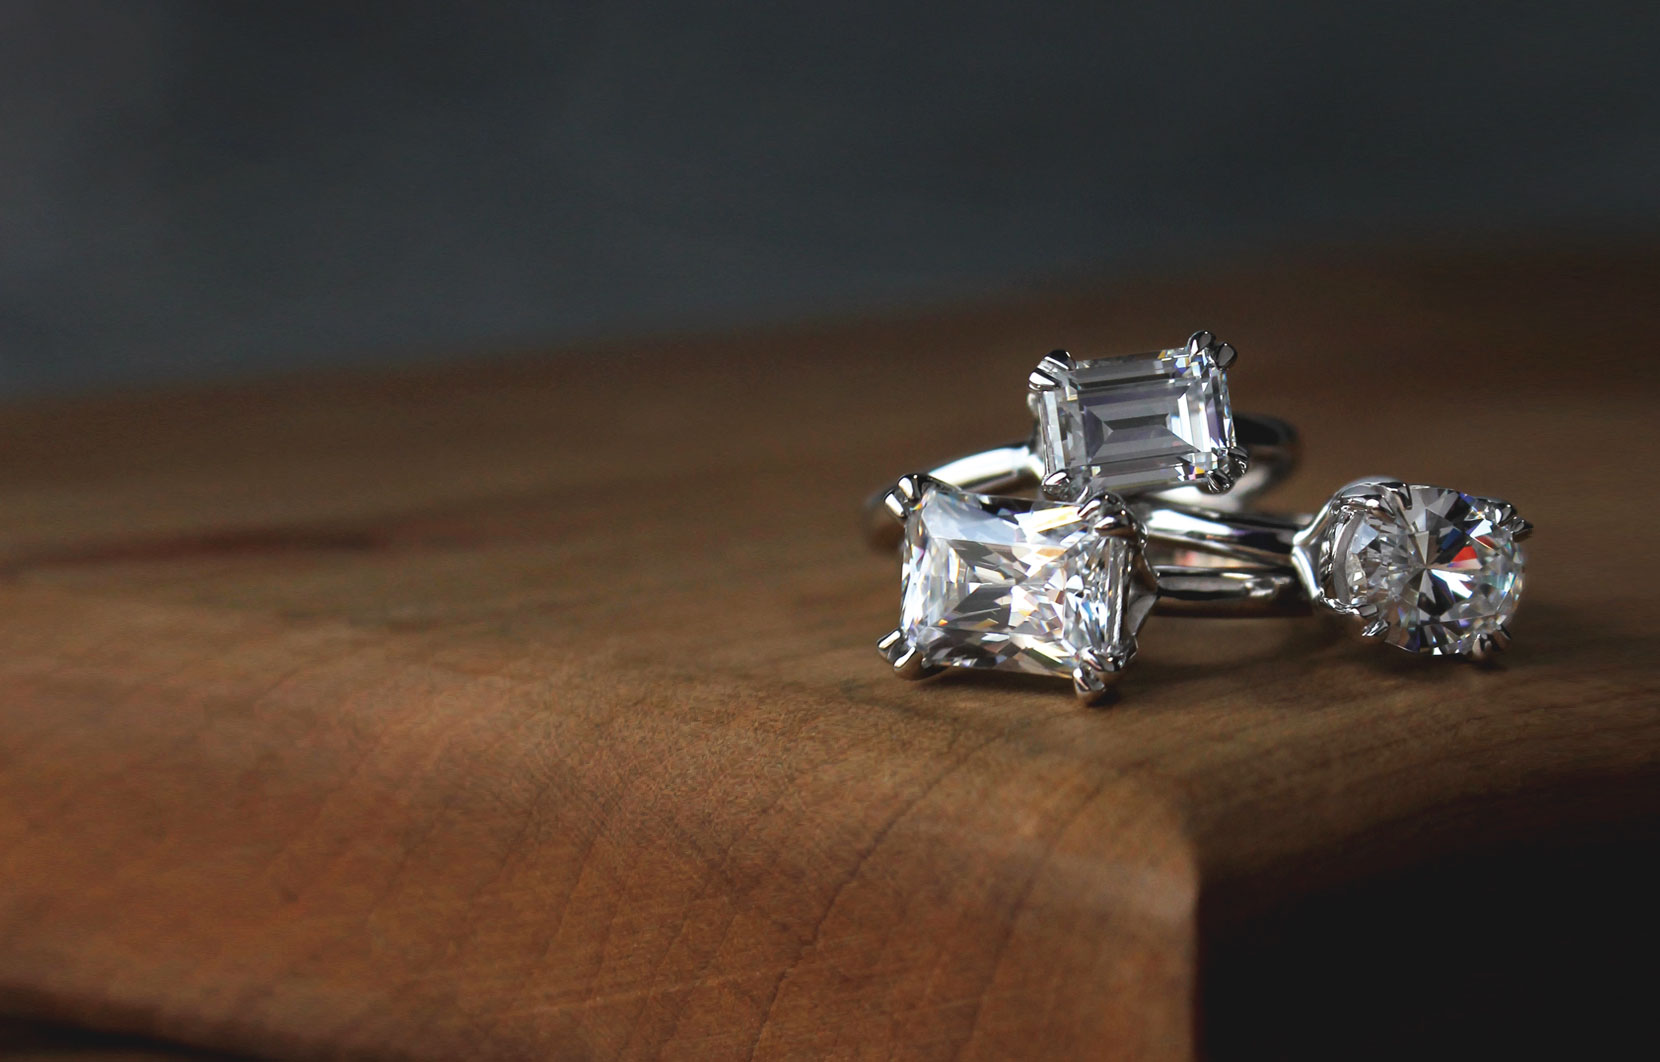 Three synthetic diamond rings with three different cuts